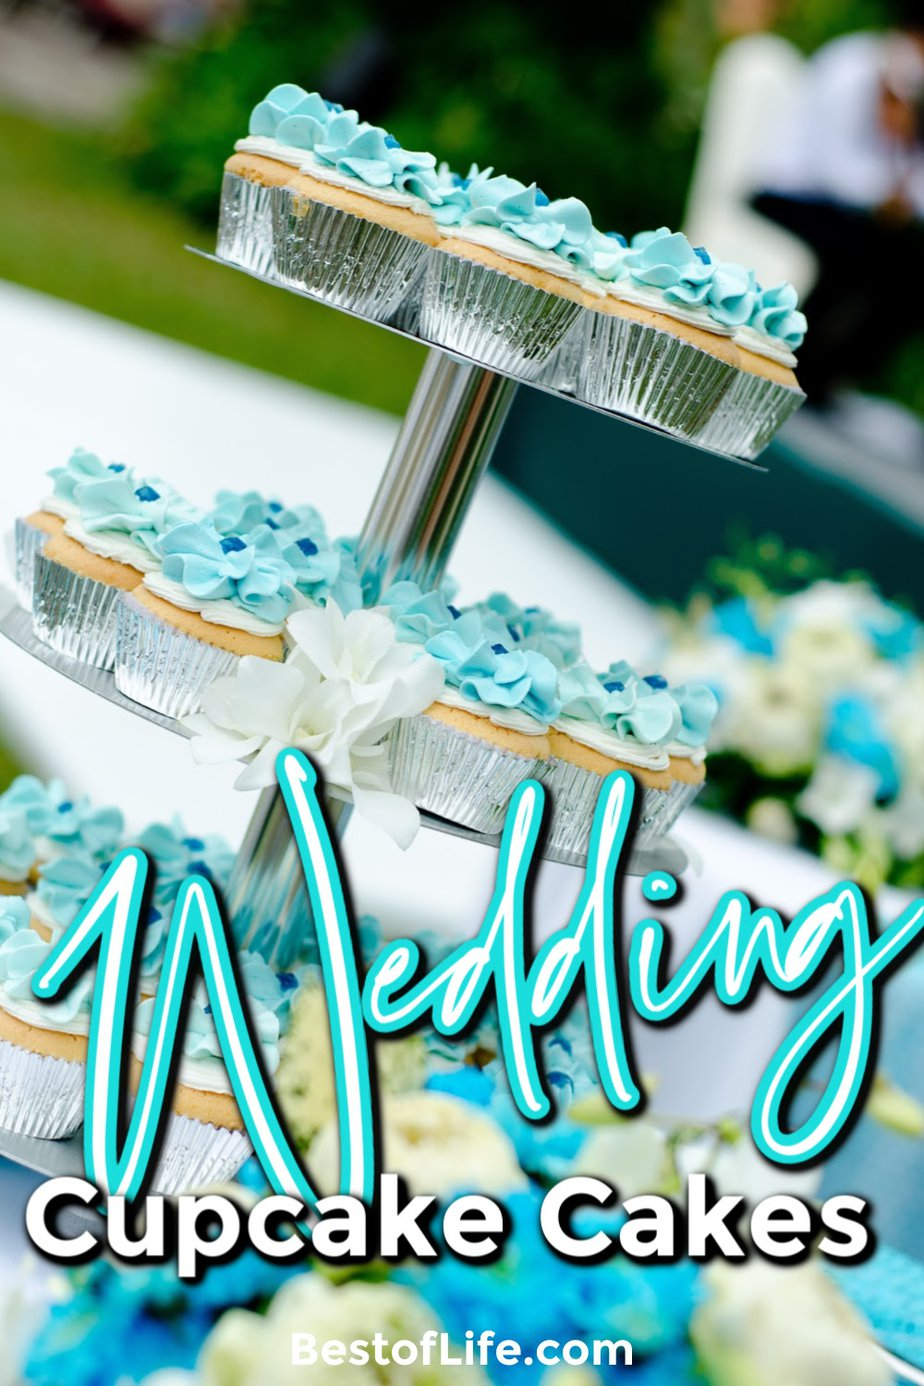 Cupcake cakes for a wedding can be as customized as any of the best wedding cakes can be and they are even easier to share with the entire party. Wedding Cake Ideas | Wedding Cake Designs | Cupcake Wedding Cake Rustic | Wedding Cake Inspiration | Simple Wedding Cake | Cupcake Wedding Cake Table #wedding #cupcakecakes #cupcakes via @thebestoflife